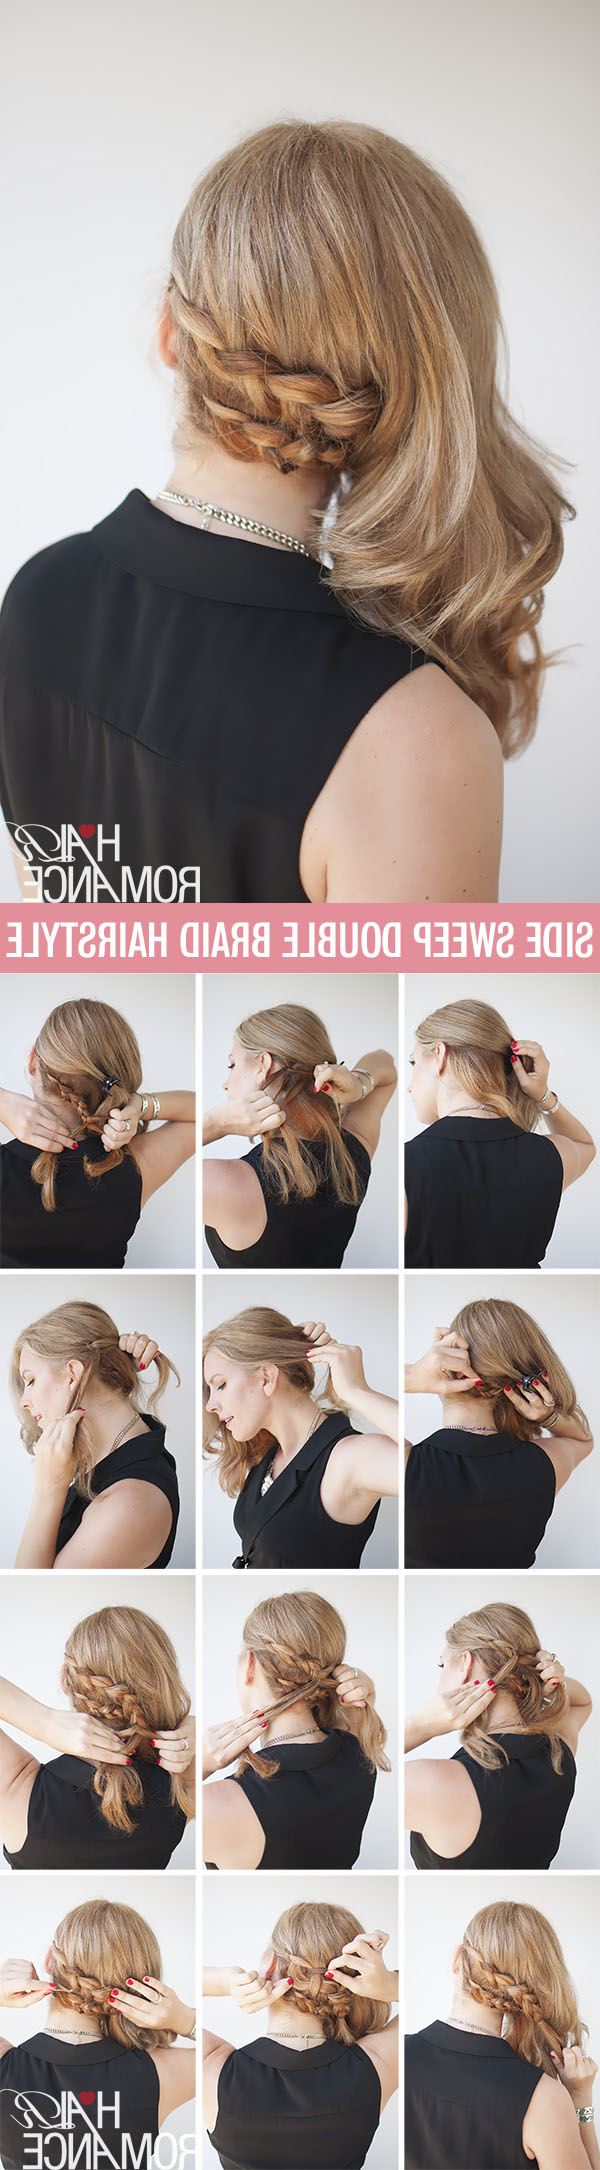 Favorite Side Swept Braid Hairstyles Throughout The Compromise Hairstyle – Half Up And Half Out Braid (View 15 of 20)